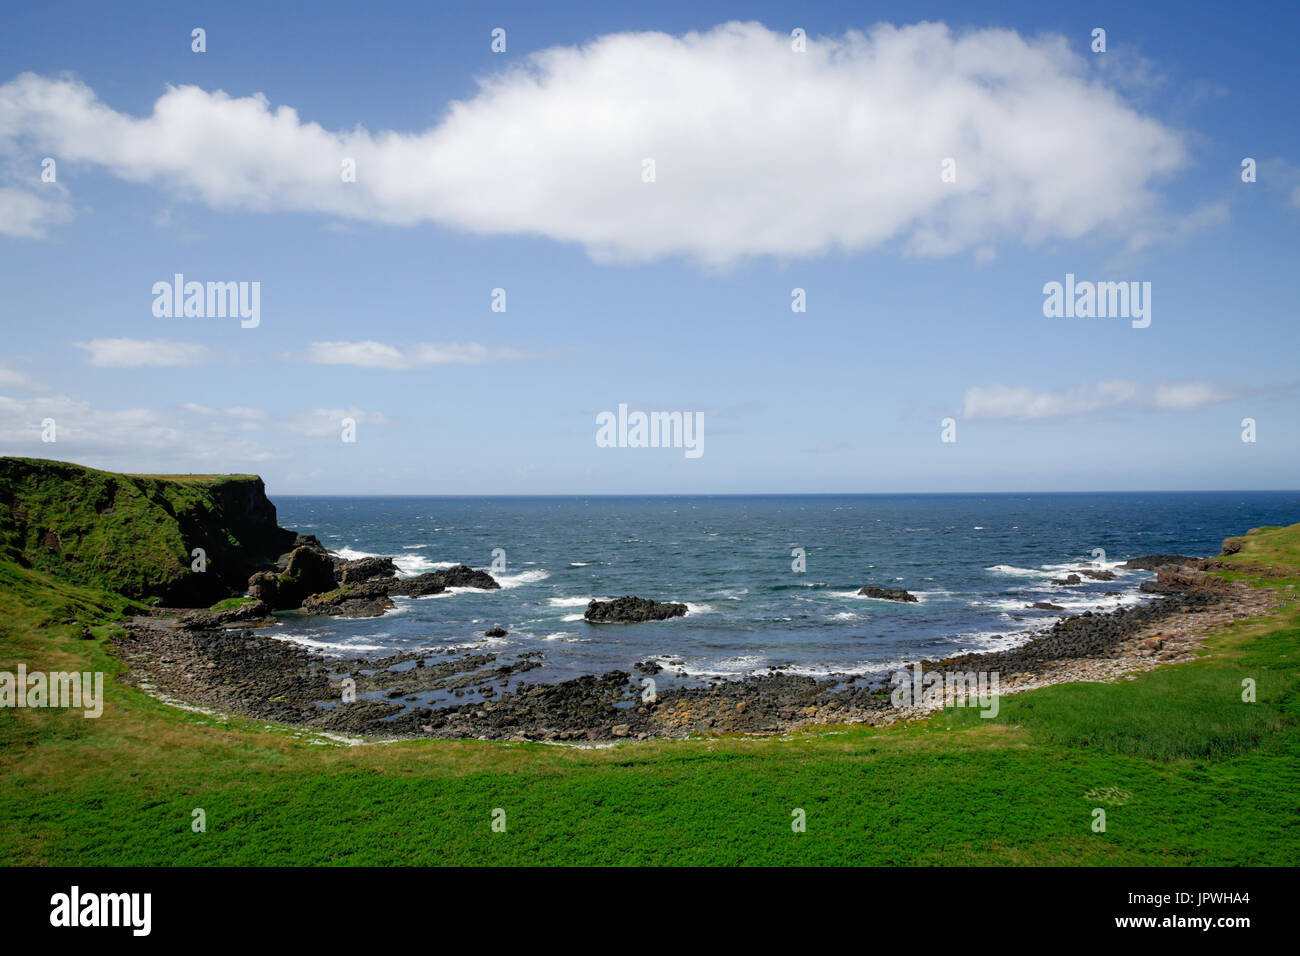 Scenic Portnaboe sits just below the Giant's Causeway Visitor's Centre and its home to famous Finn McCool's camel Bushmills Antrim Northern Ireland - Stock Image